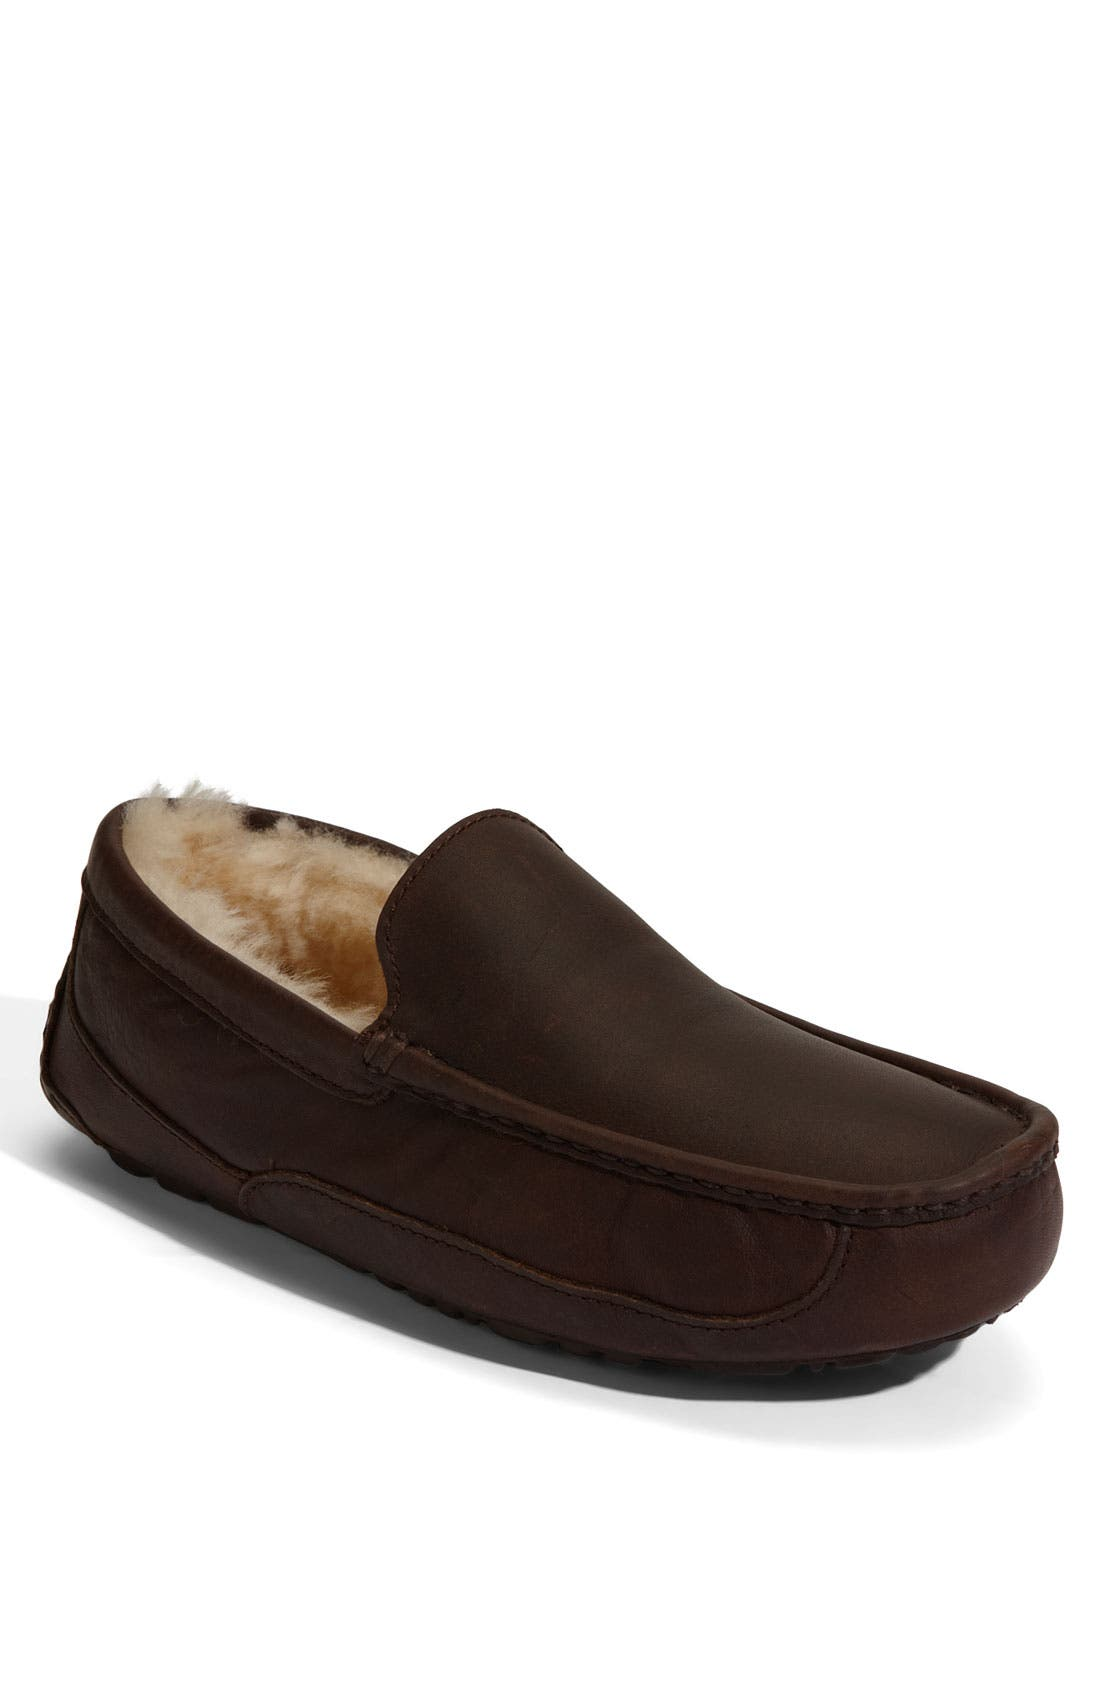 Driver Loafer Shoes for Men On Sale, shadow, Suede leather, 2017, 10.5 12 5 6 6.5 7 7 7.5 7.5 8 8 8.5 8.5 Tod's